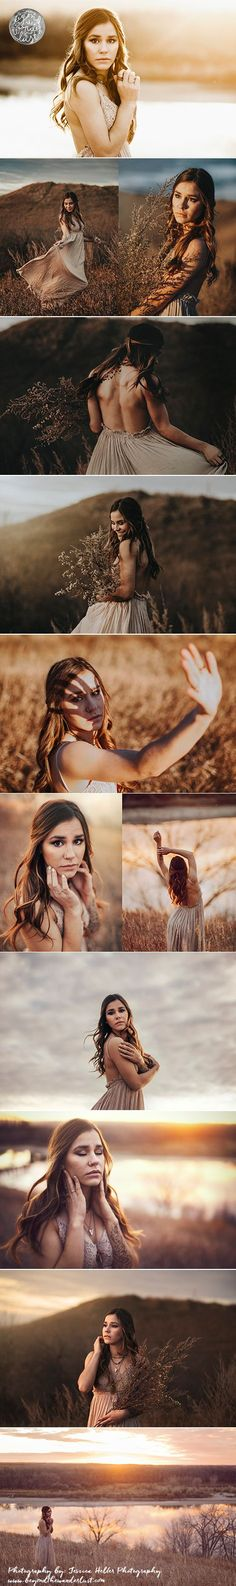 Senior picture ideas